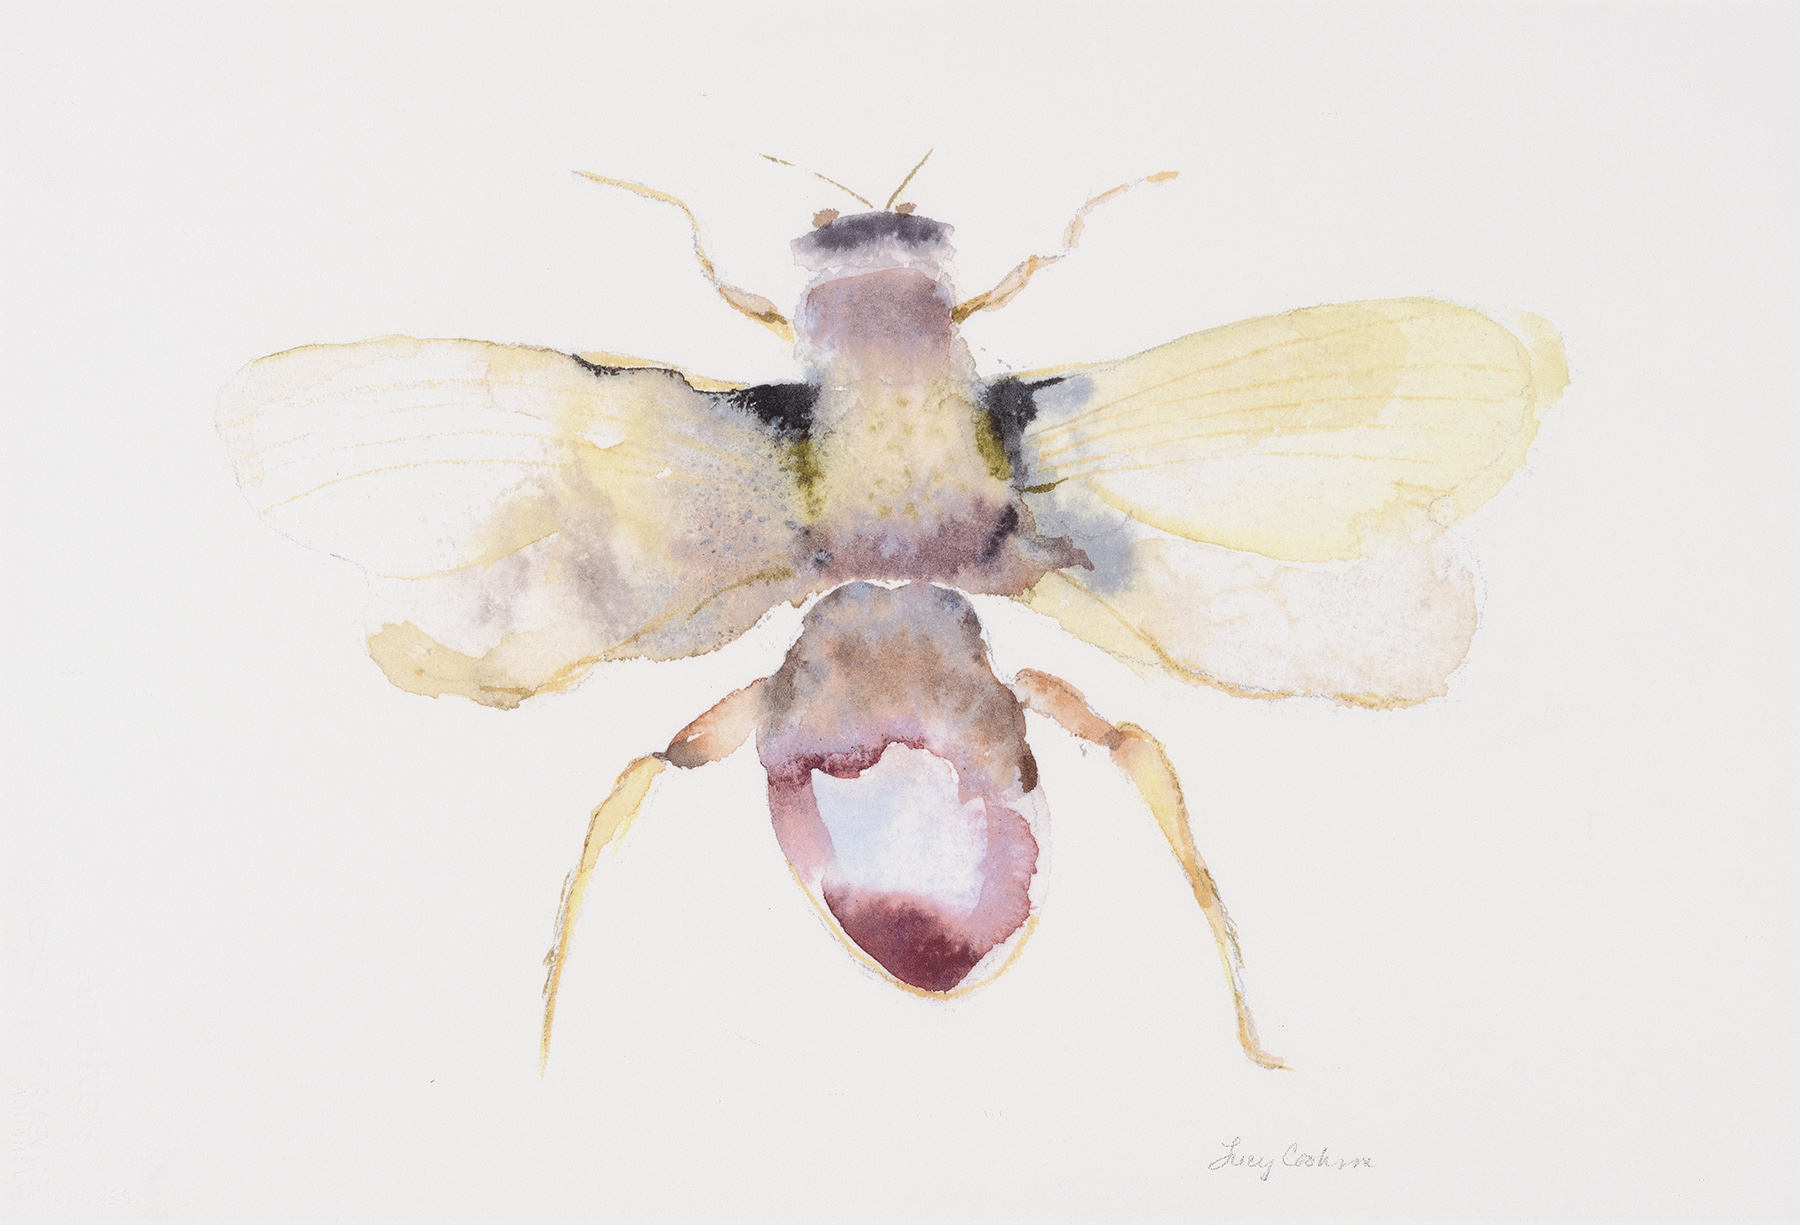 Moth III (Prize), 2009, Watercolor on paper, 11.5 x 14 in.